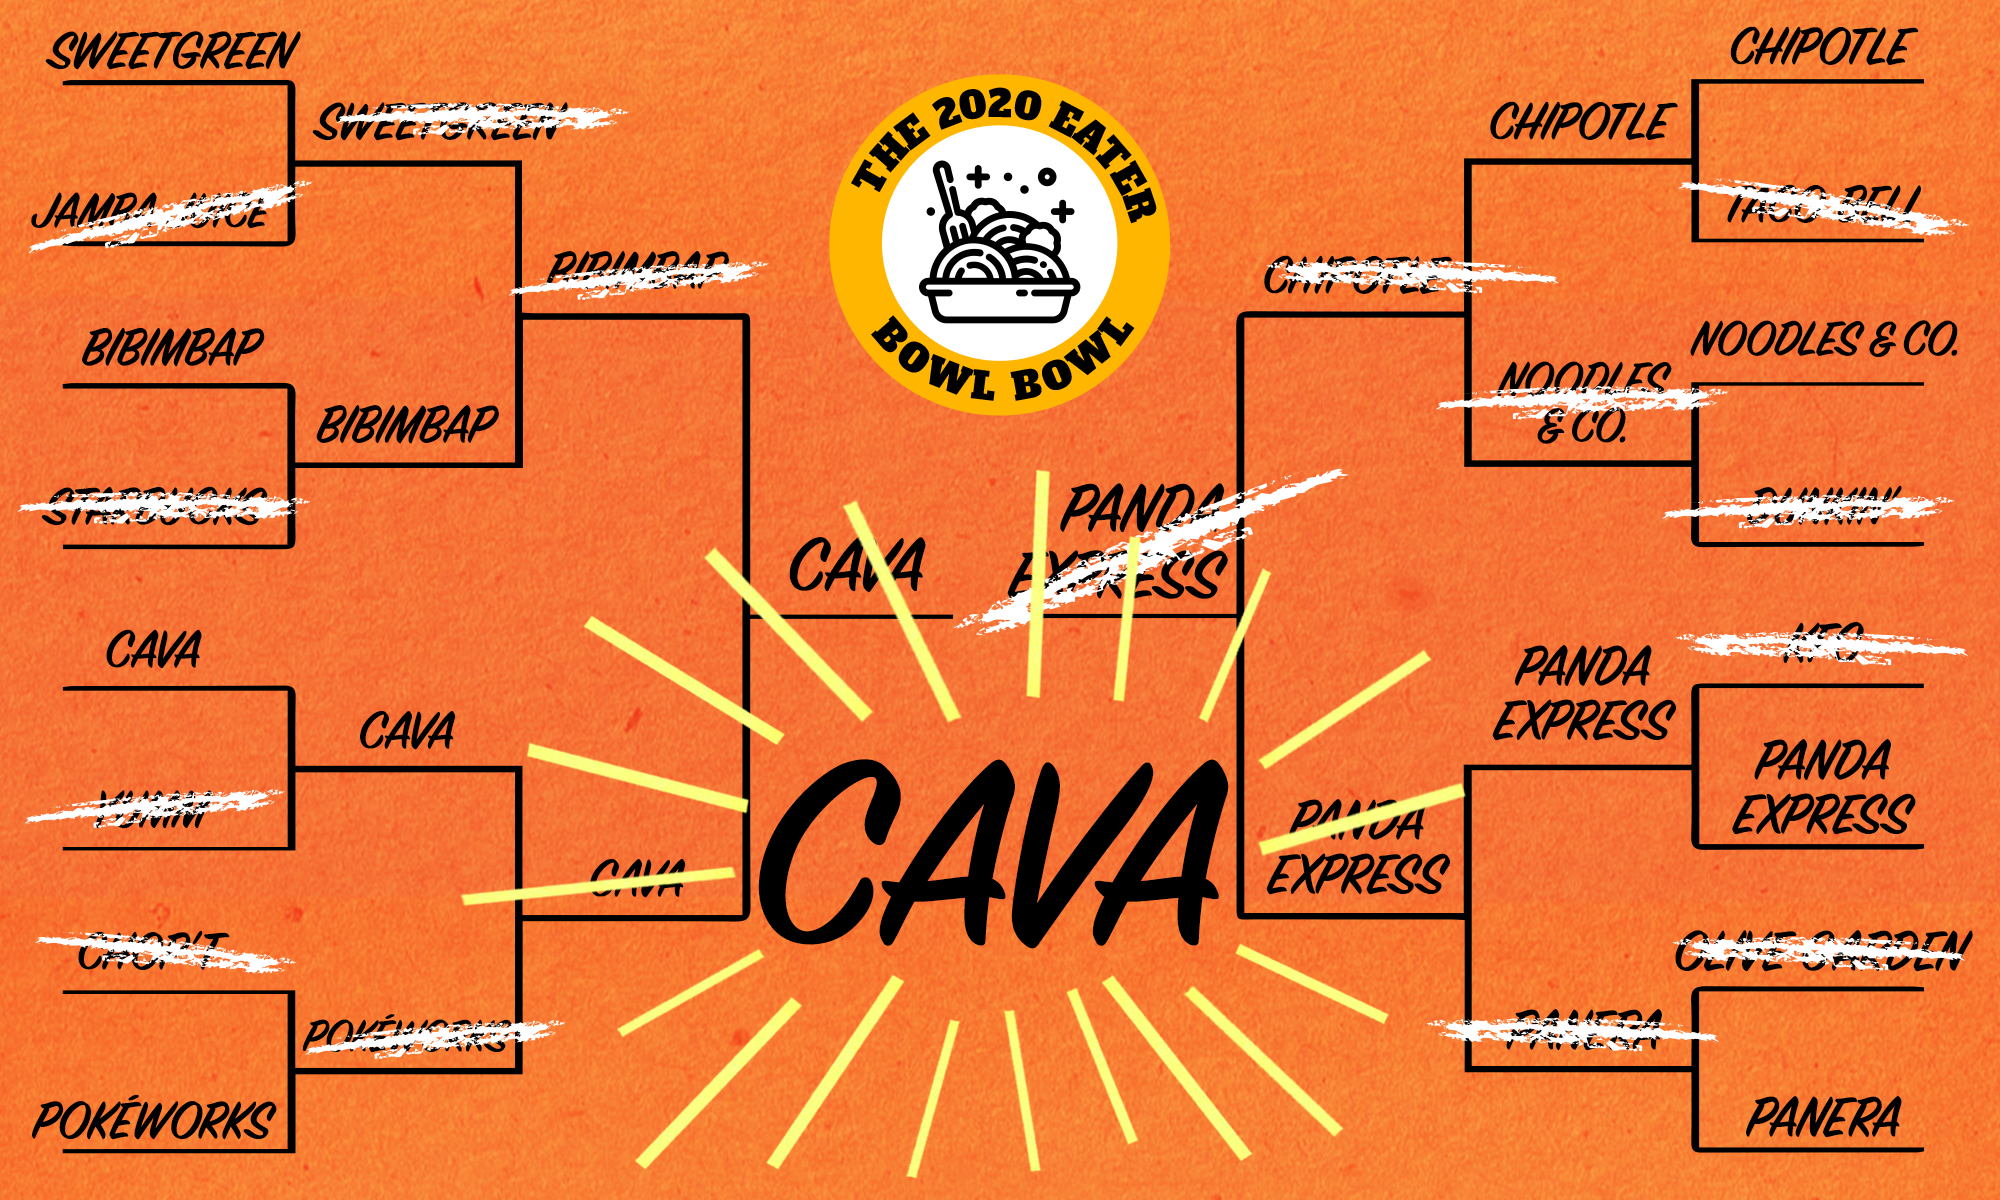 The Eater Bowl Bowl bracket in black text, losing bowls crossed out in white, with the winner Cava in large font beneath the Bowl Bowl badge on an orange background,